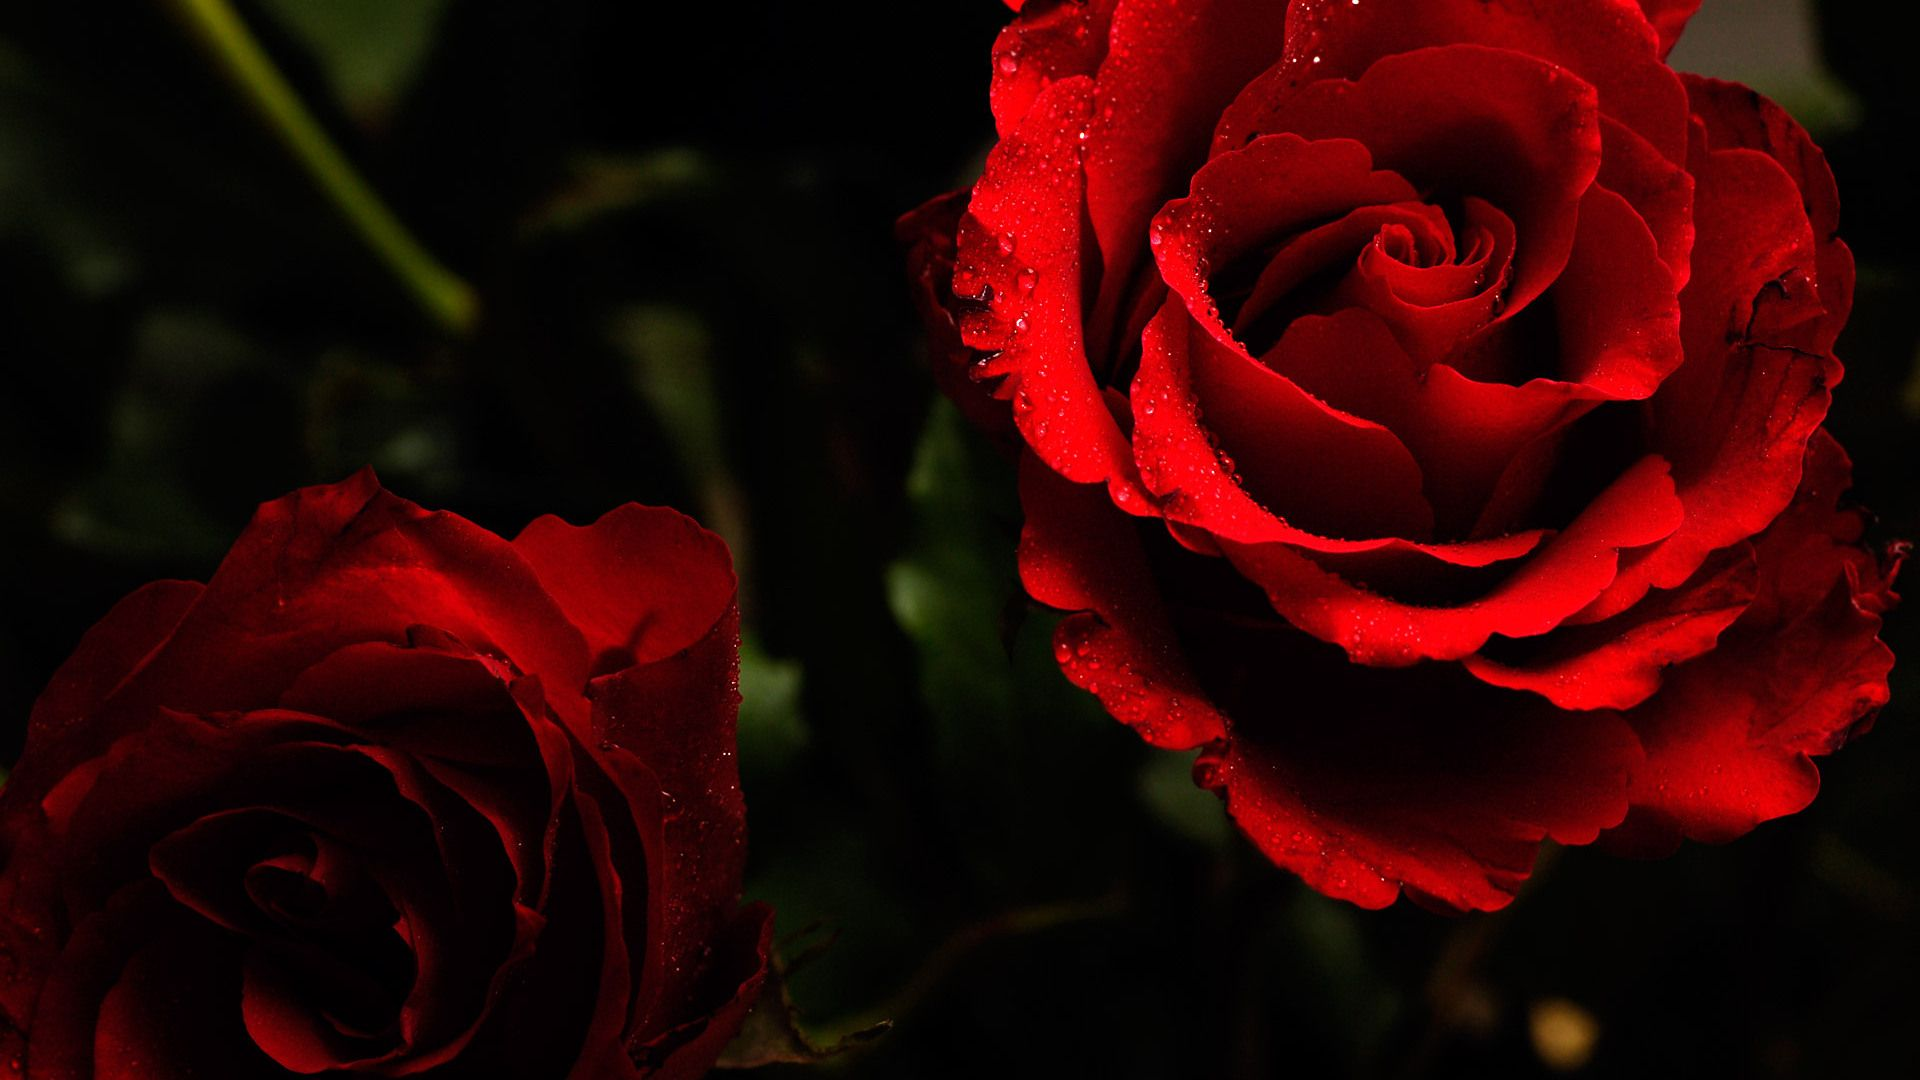 Red flower high quality wallpapers flowers pinterest red red flower high quality wallpapers izmirmasajfo